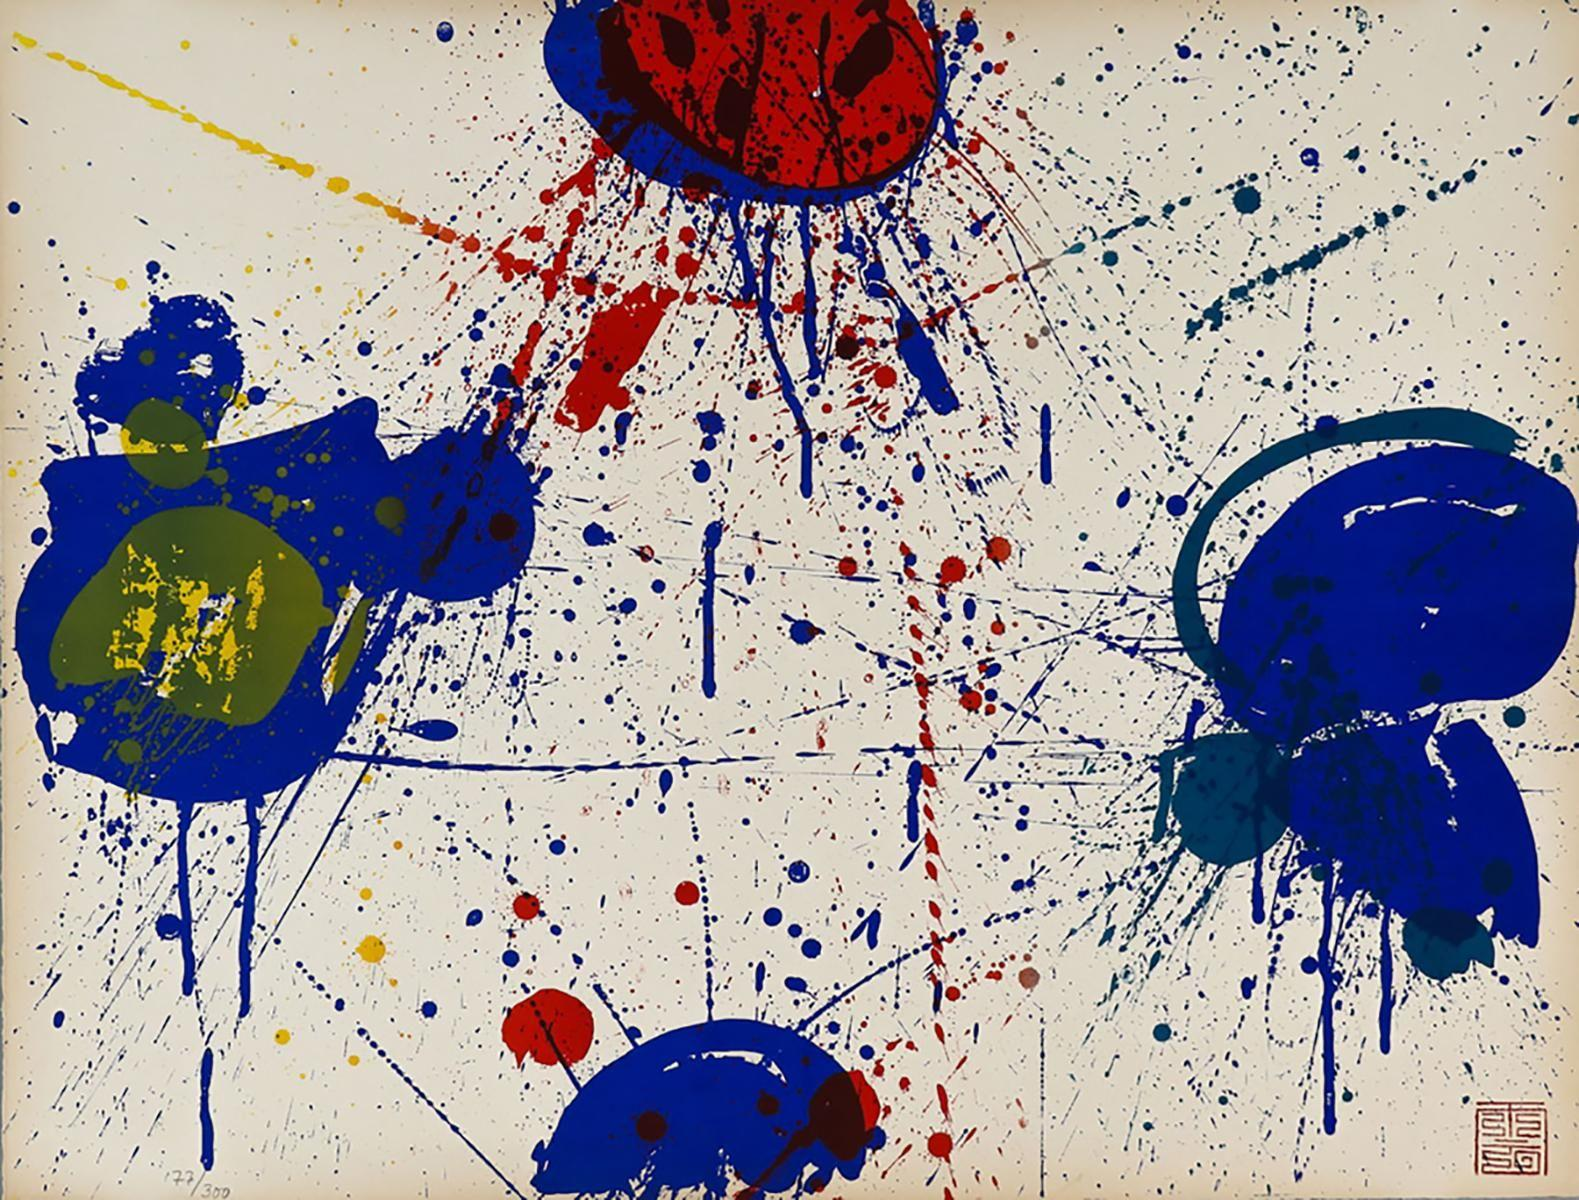 Sam Francis - The Upper Red, 1963